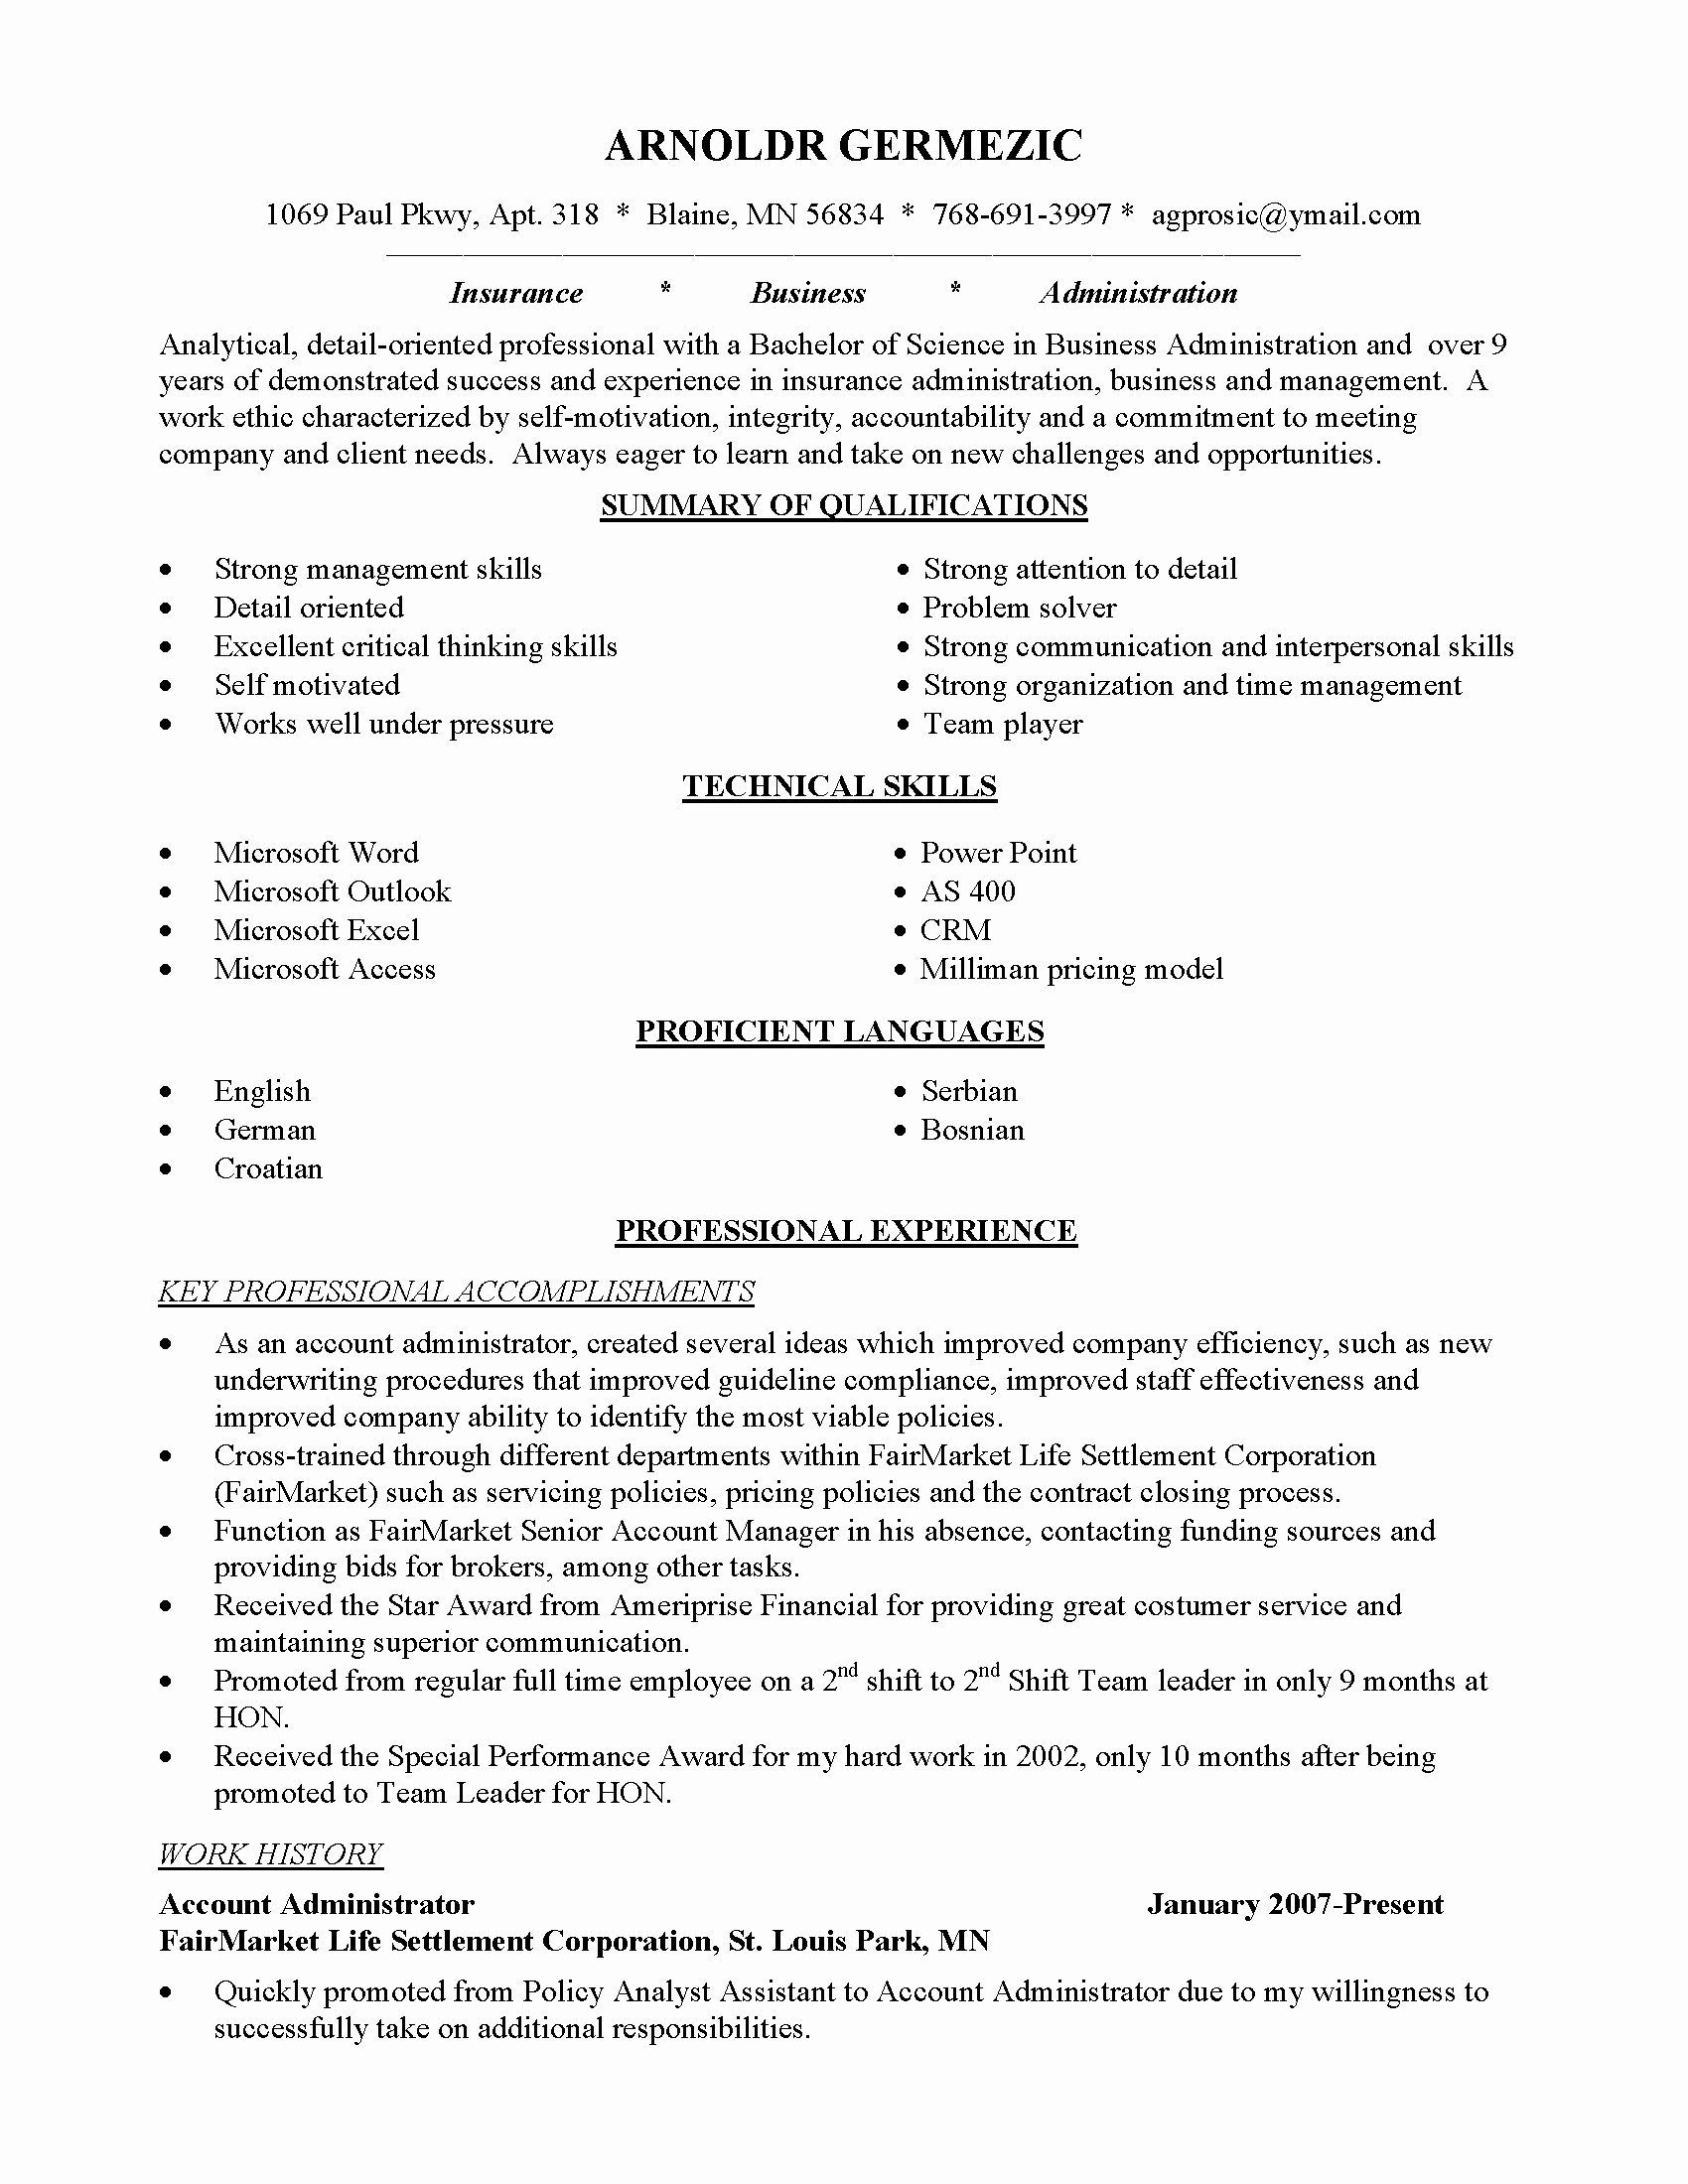 free resume templates changing careers    careers  changing  freeresumetemplates  resume